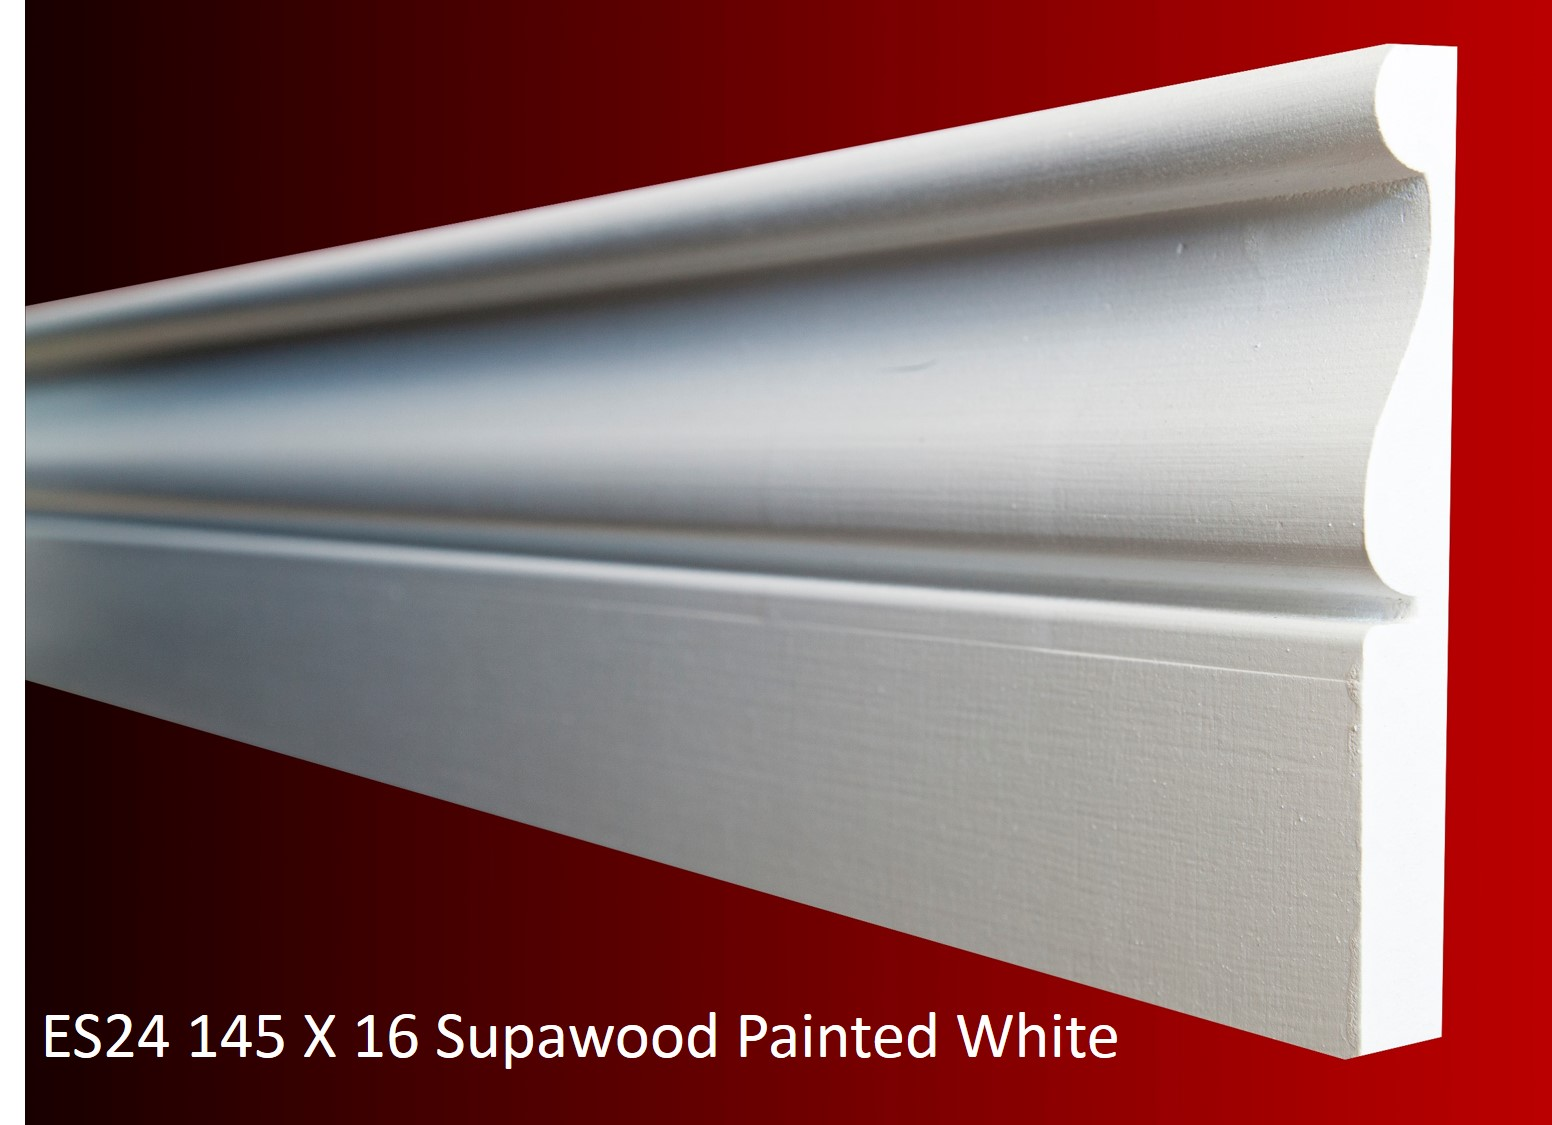 ES24 145 X 16 Supawood Painted White